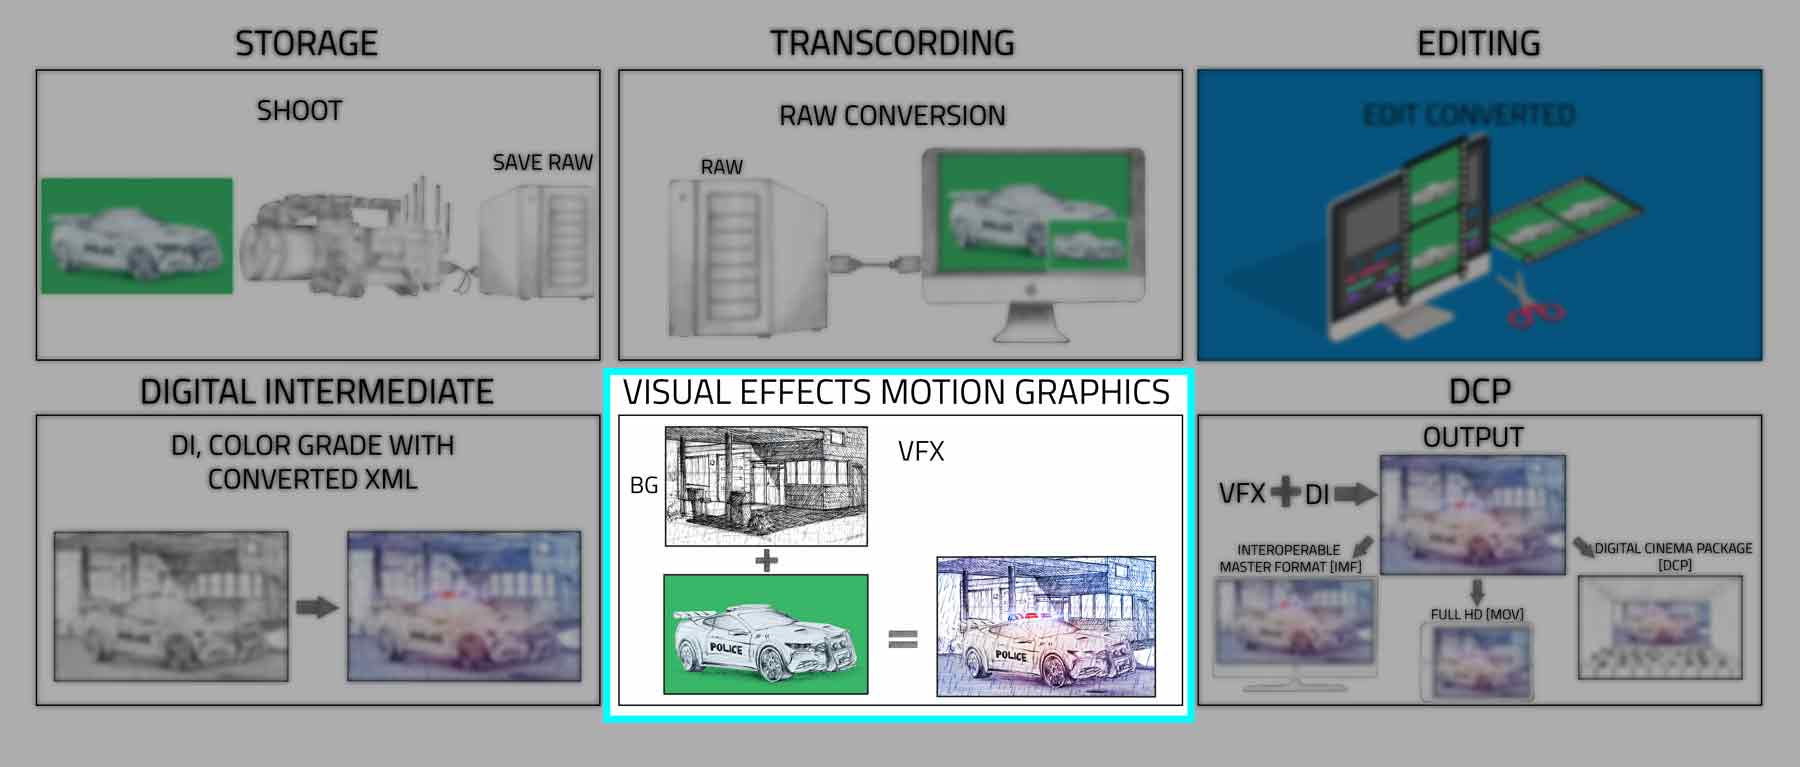 vfx 2D and 3D in post production services